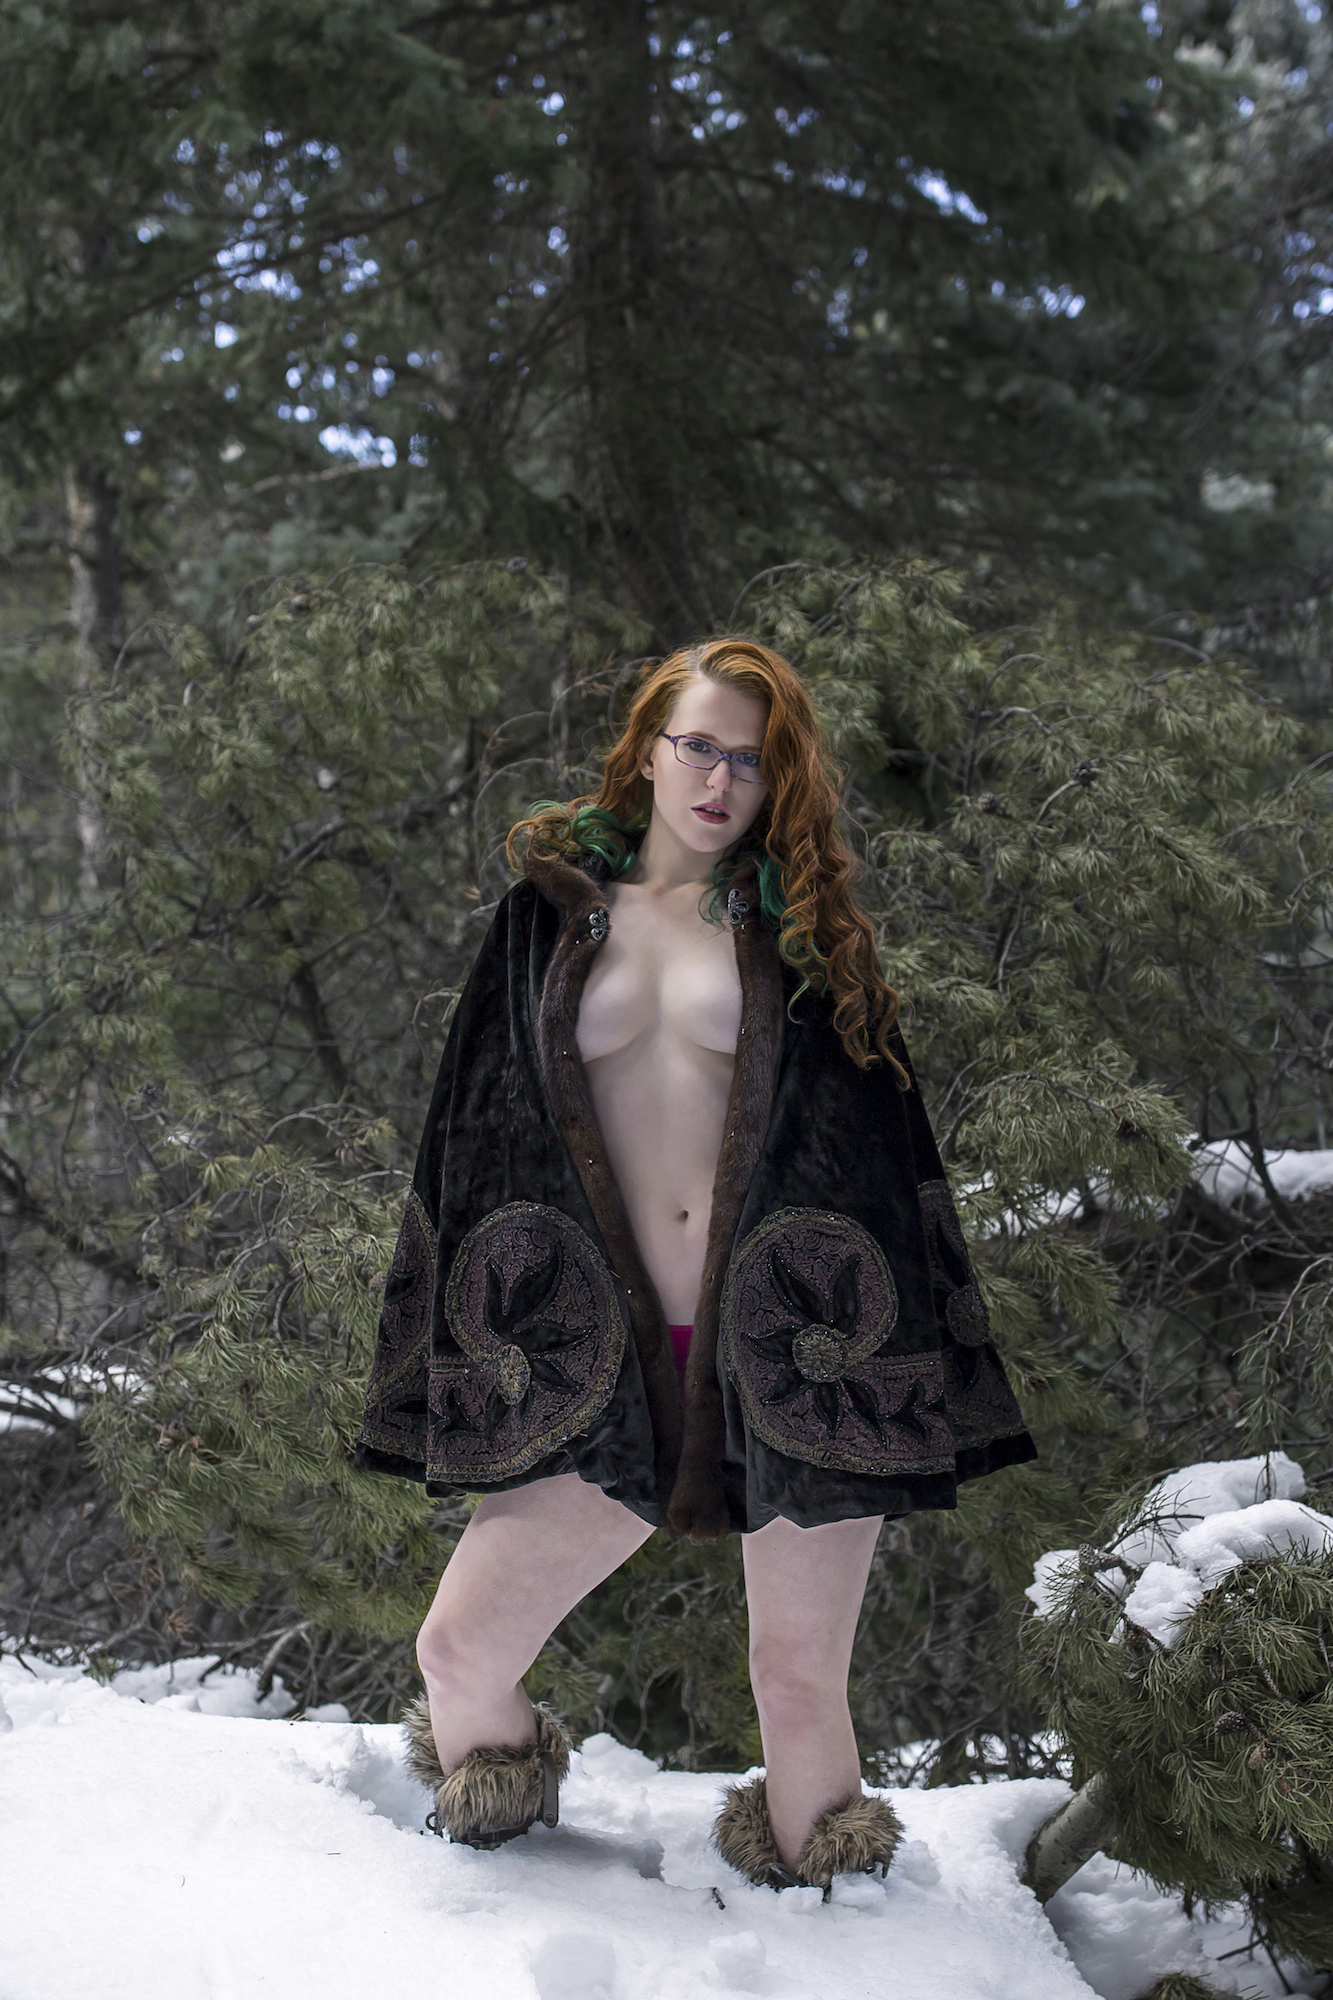 Wildling in the Snow